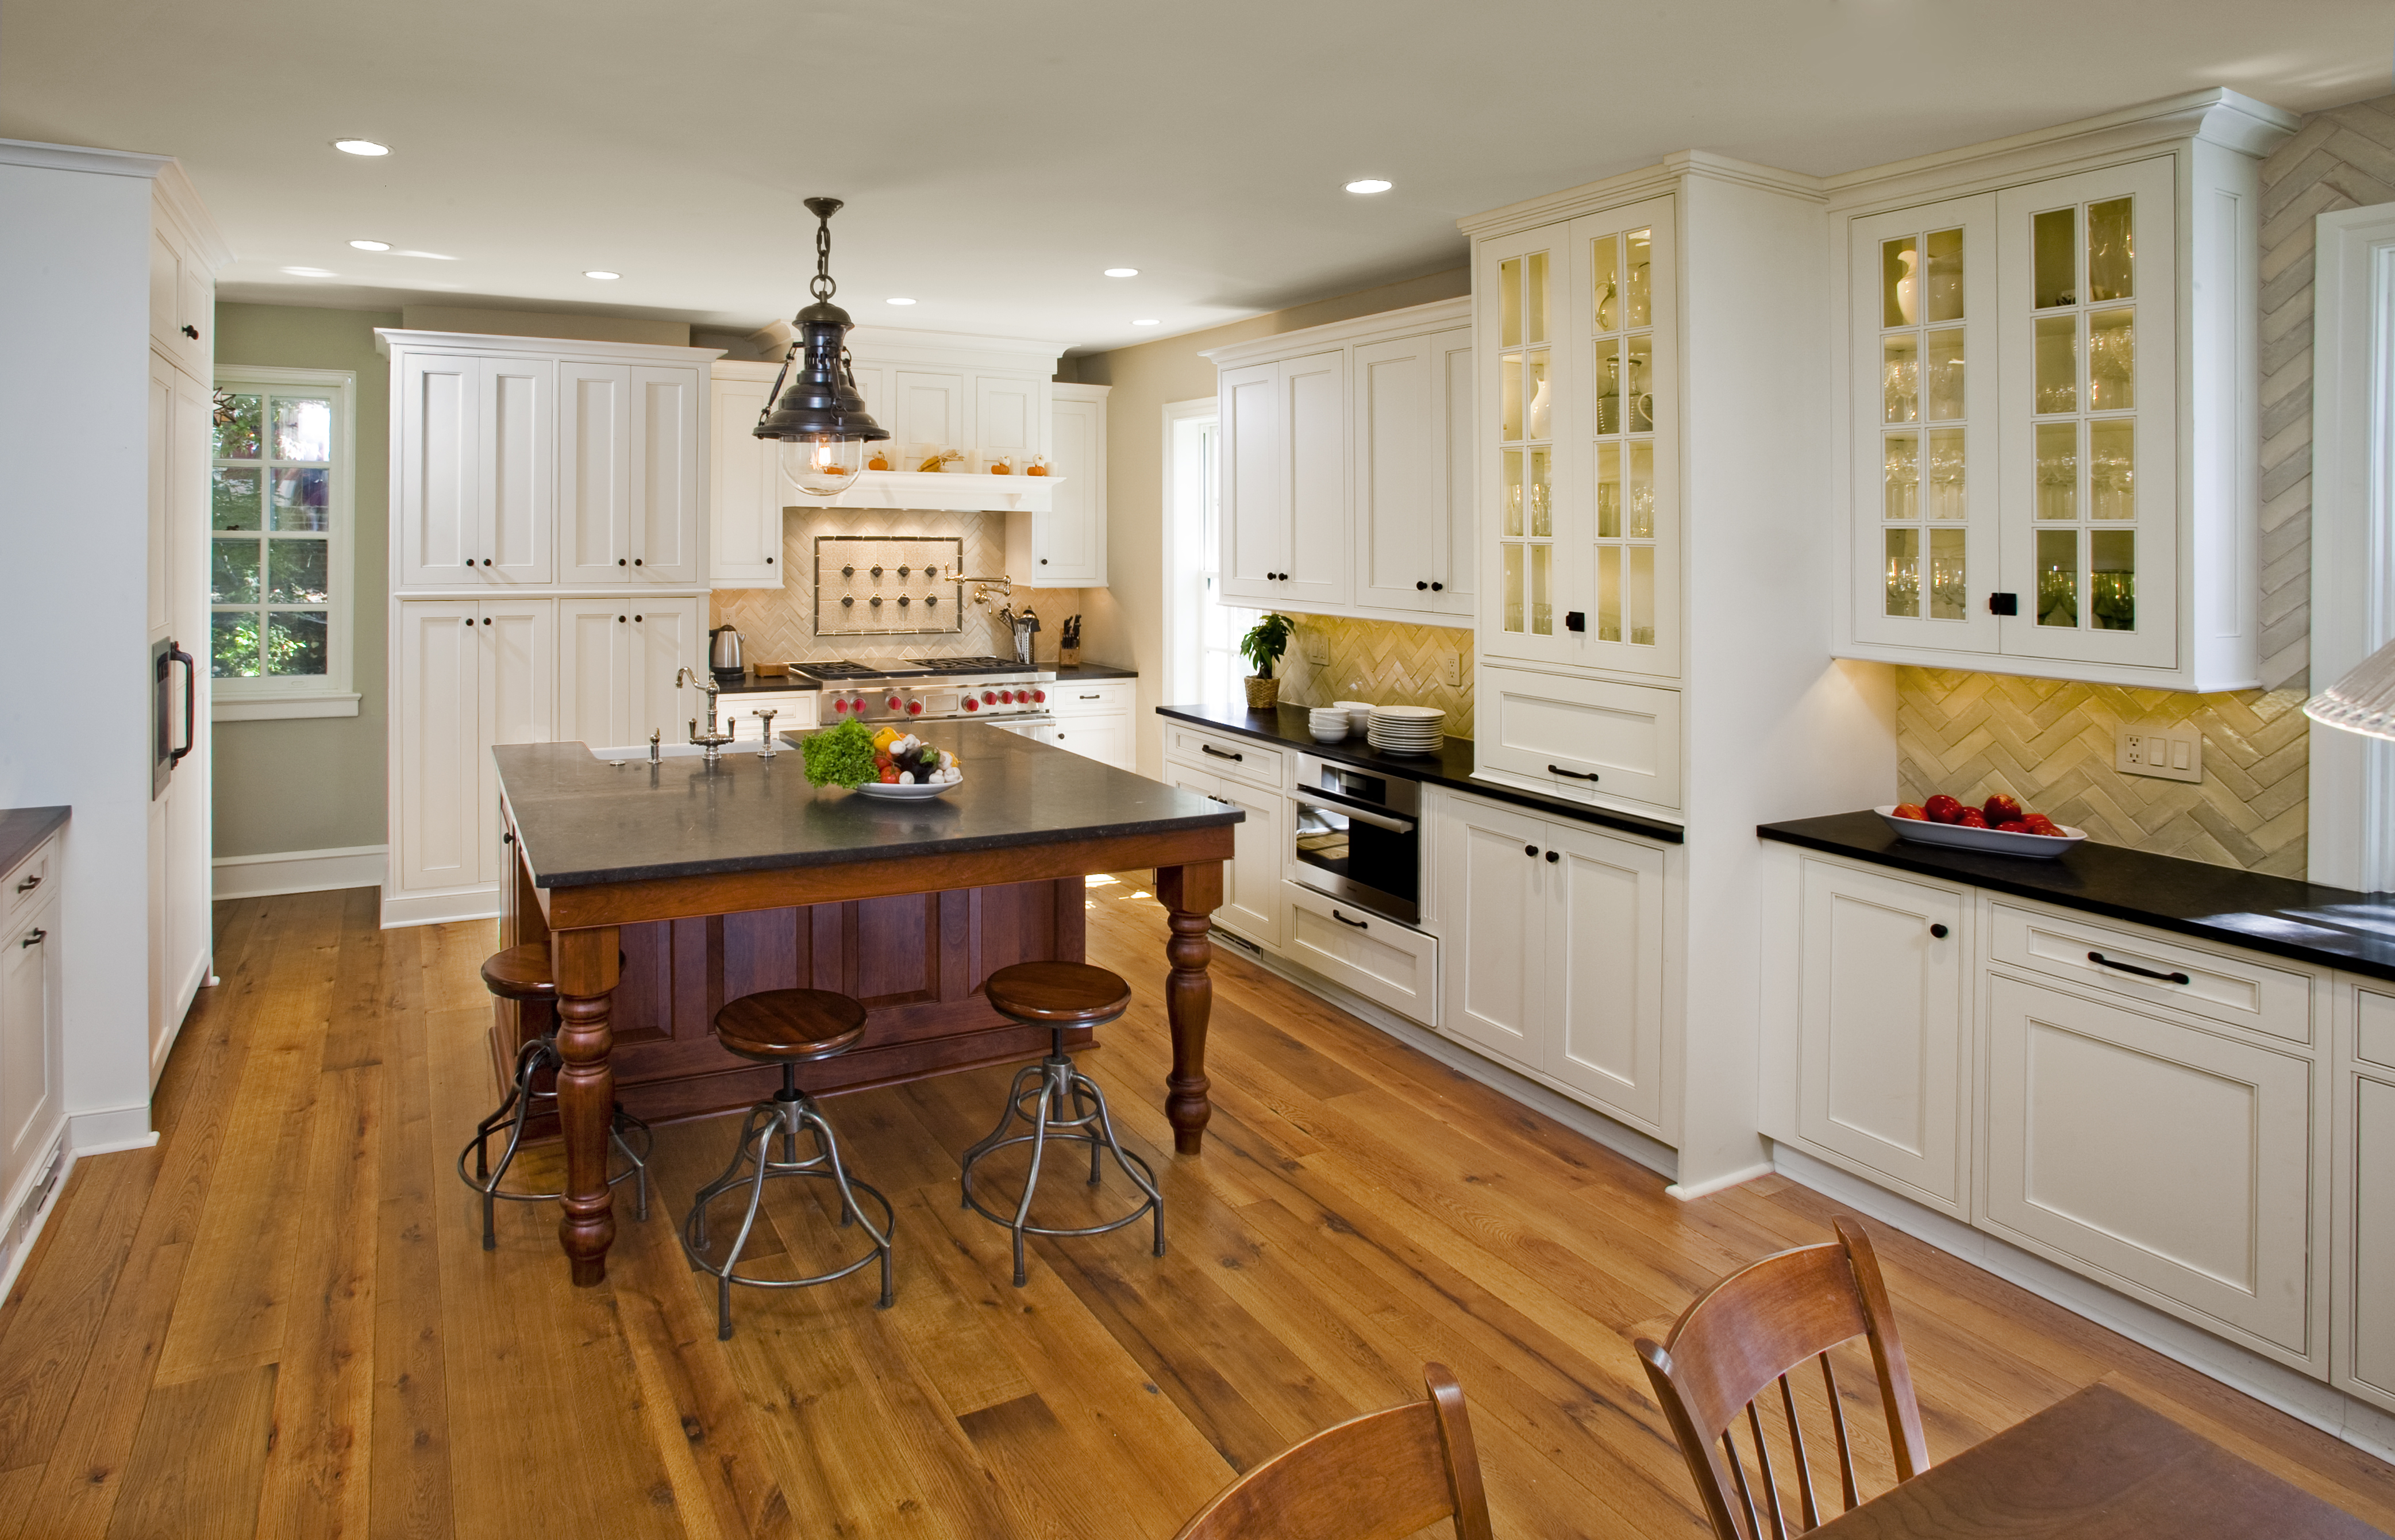 Period Inspired Kitchen- Wayne, PA